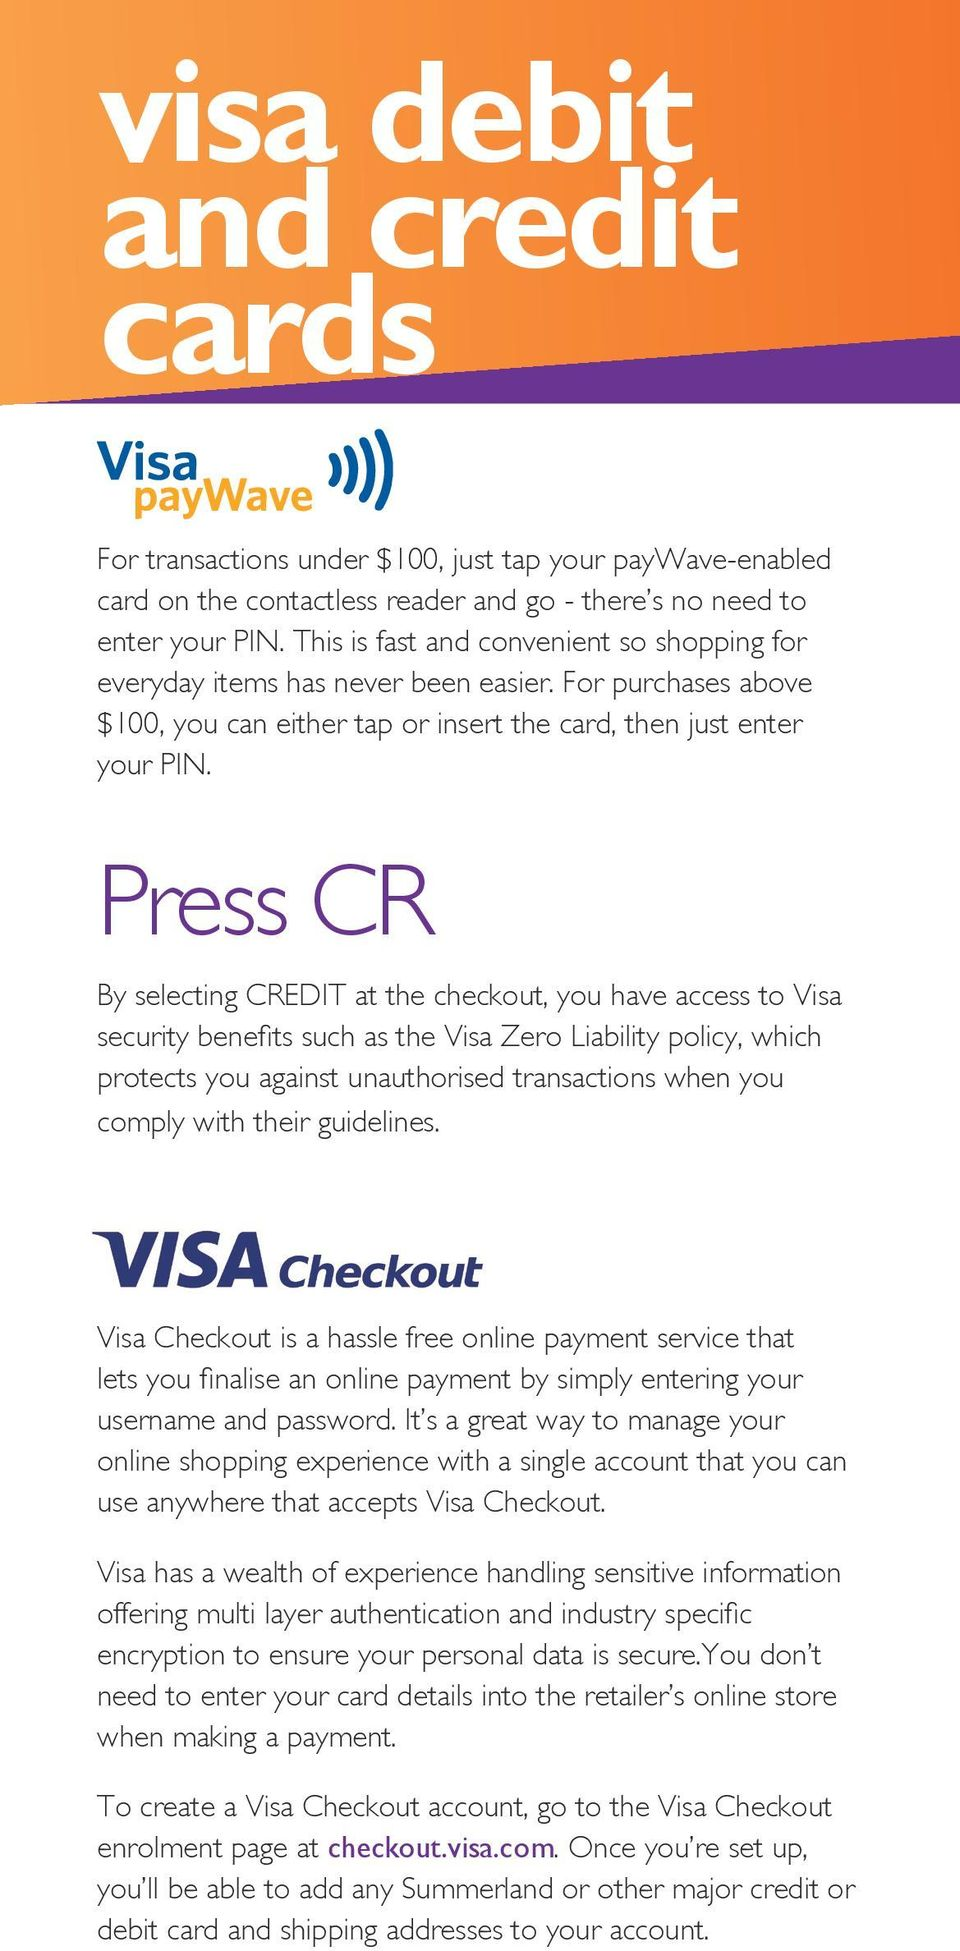 Press CR By selecting CREDIT at the checkout, you have access to Visa security benefits such as the Visa Zero Liability policy, which protects you against unauthorised transactions when you comply